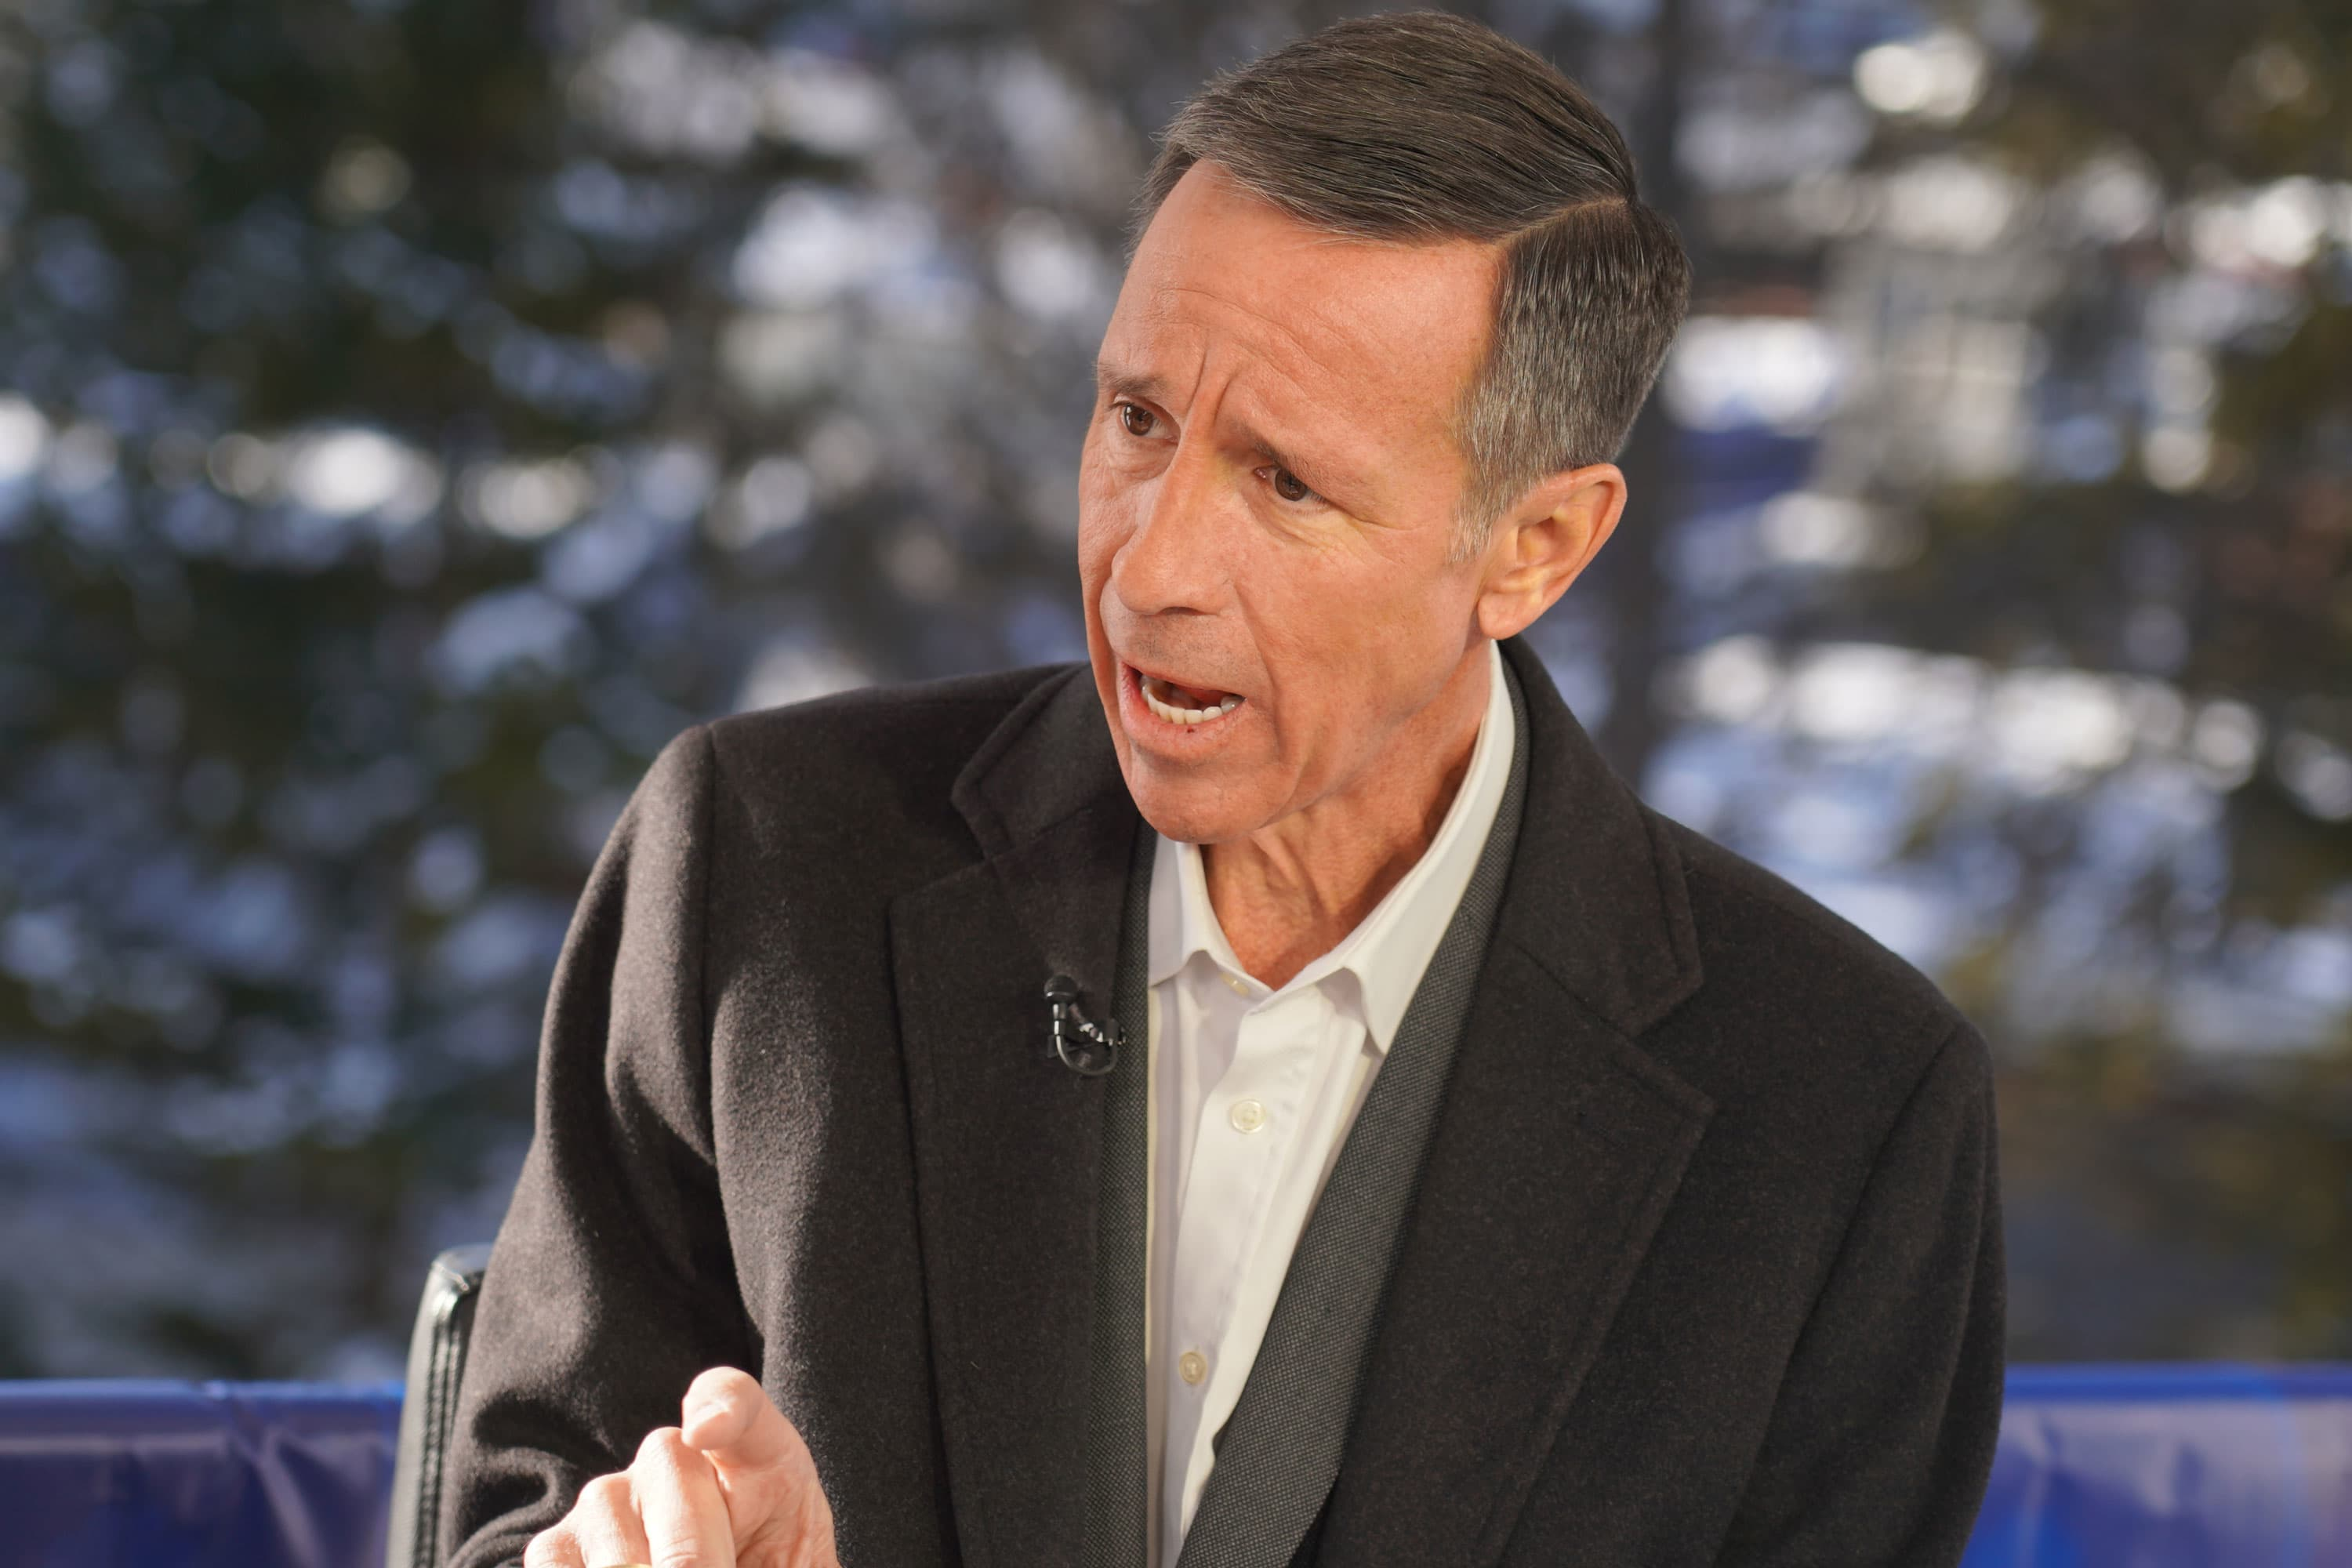 Marriott says CEO Arne Sorenson died after battle with cancer